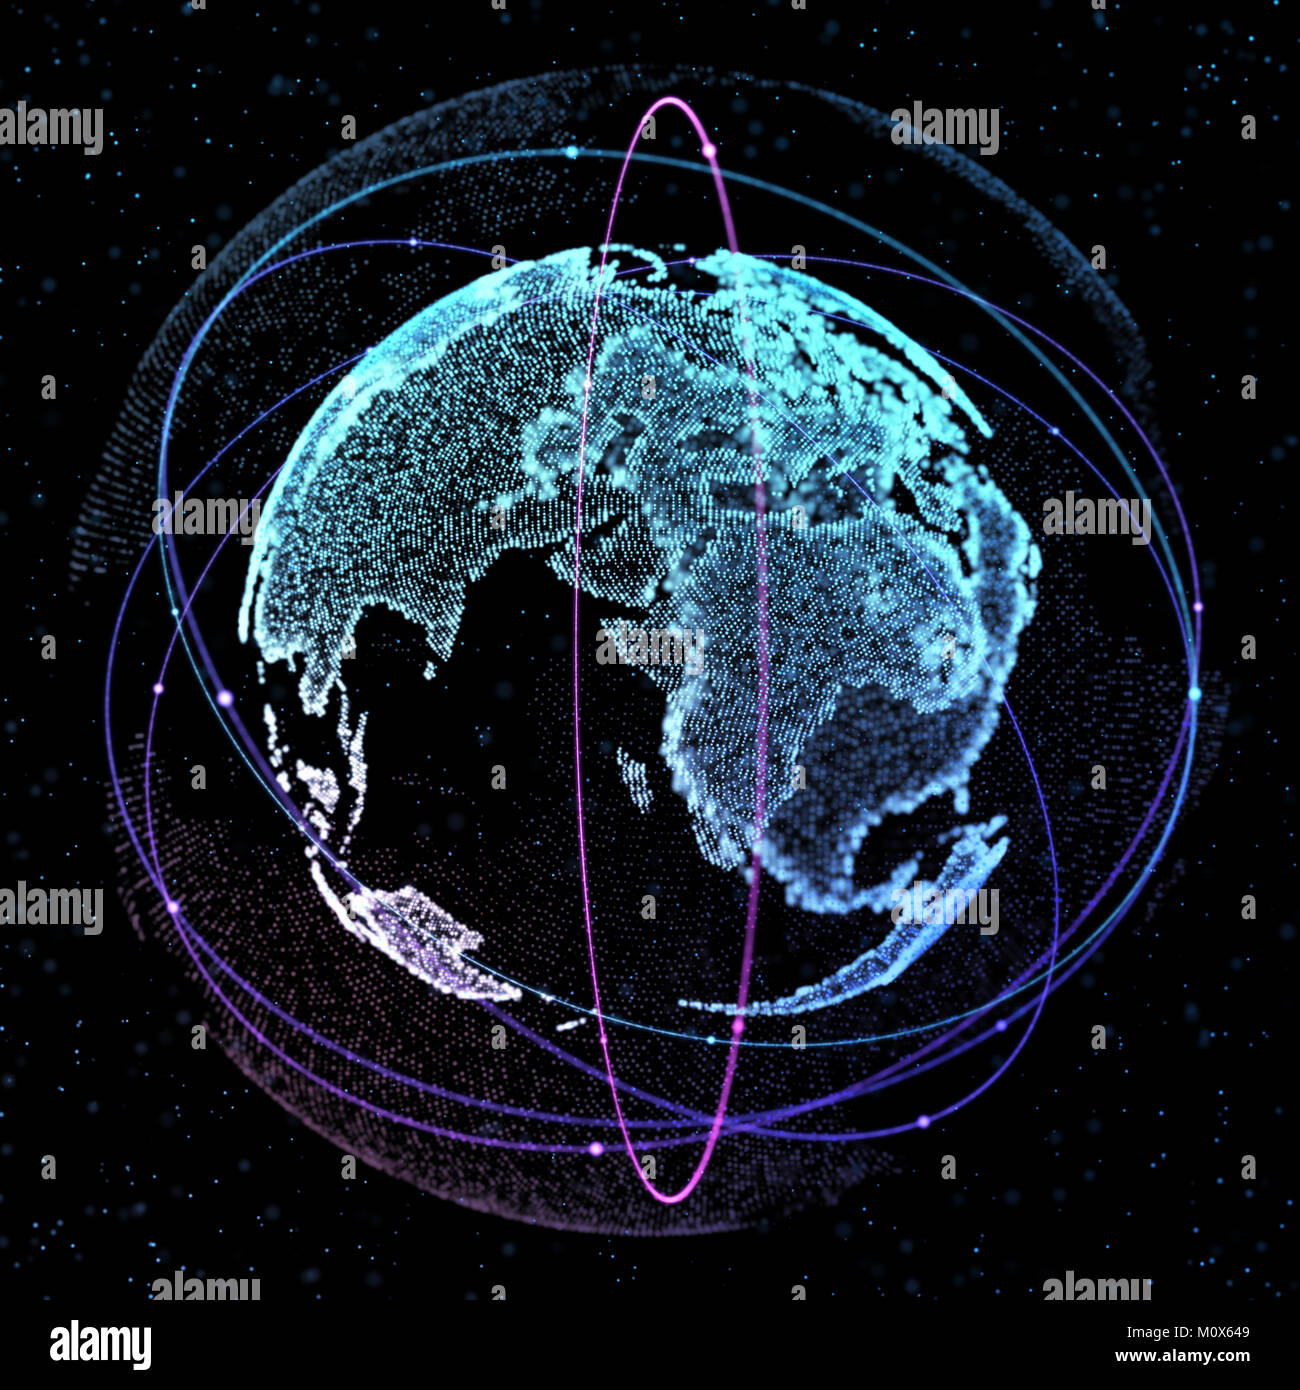 World map satellite representing the global global network stock world map satellite representing the global global network connectioninternational meaning 3d illustration publicscrutiny Gallery